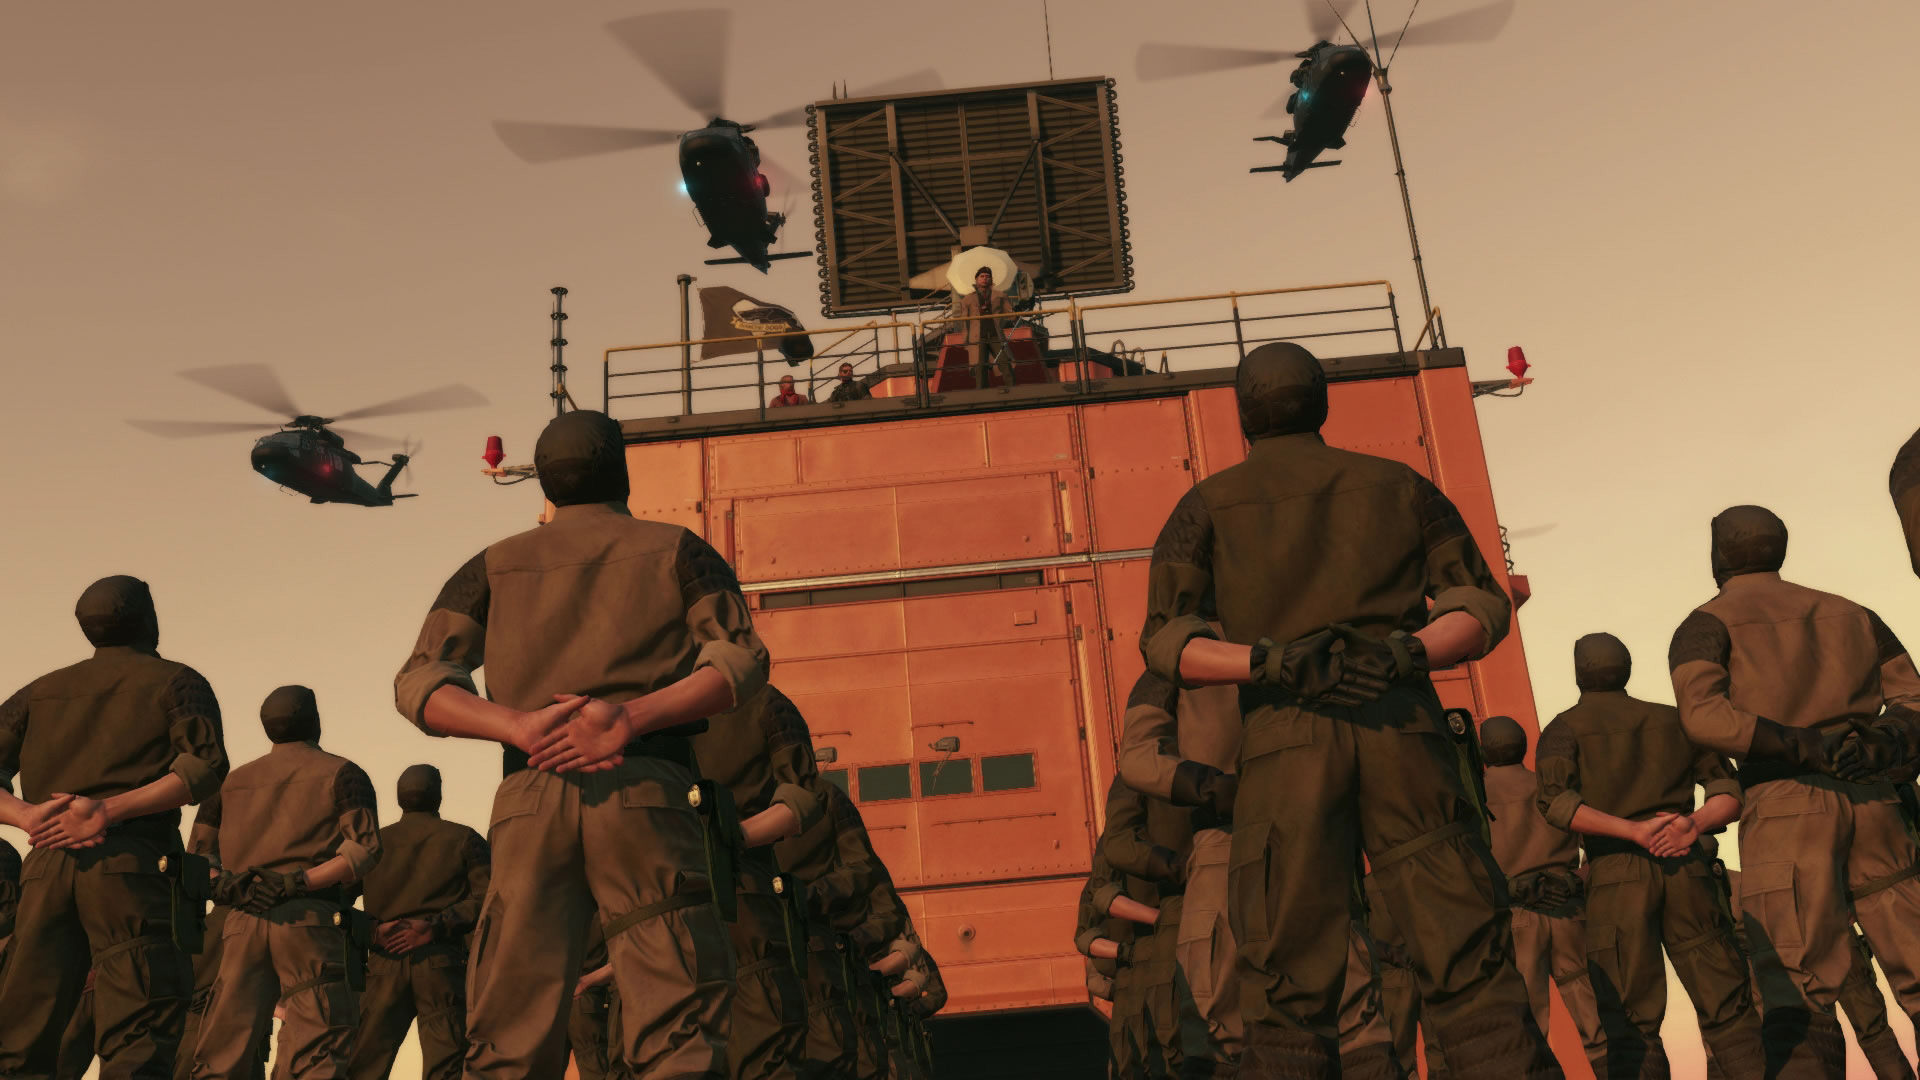 Metal Gear Solid V: The Phantom Pain review – Metal Gear